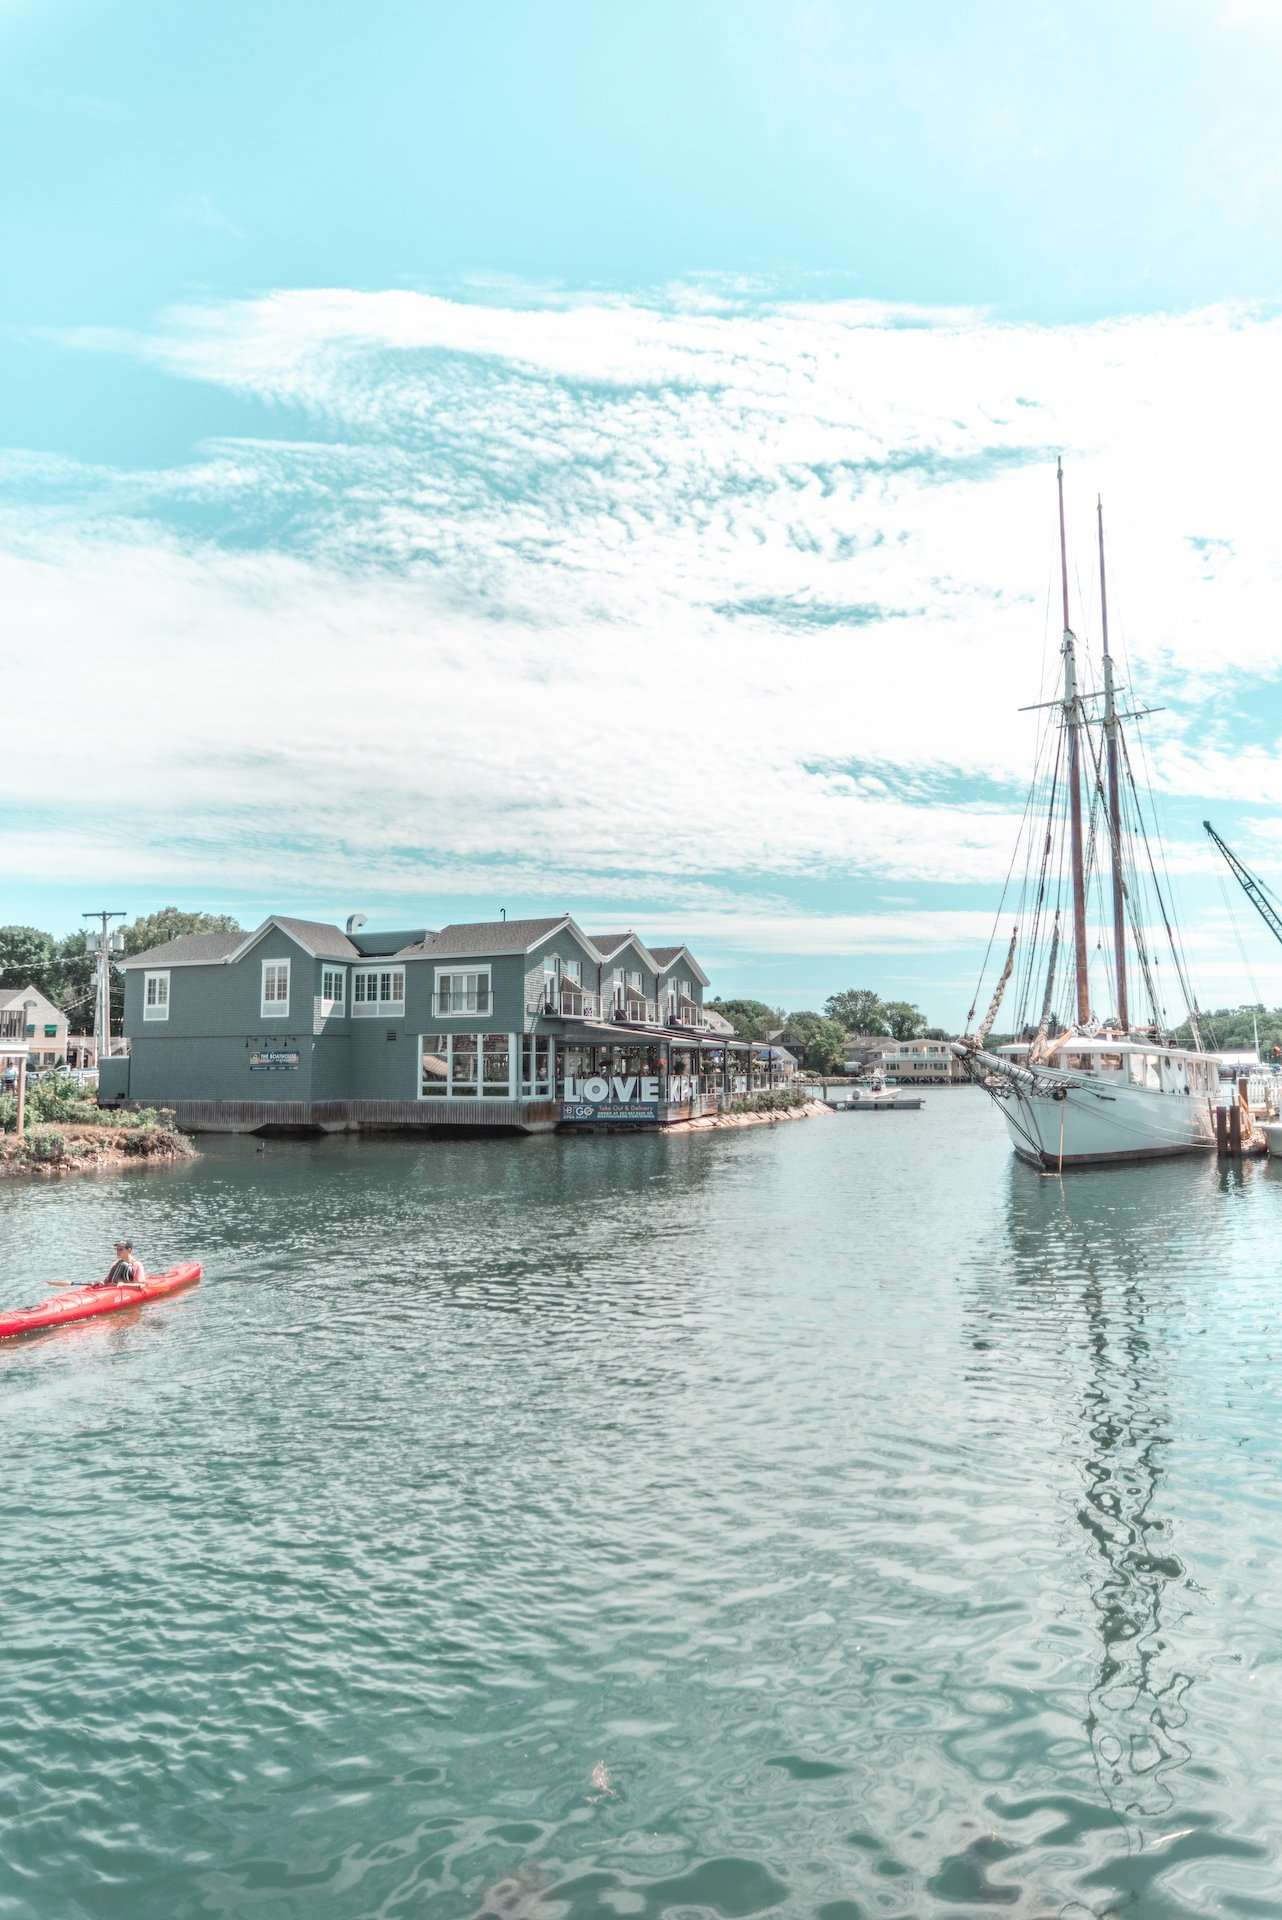 ships in Kennebunkport